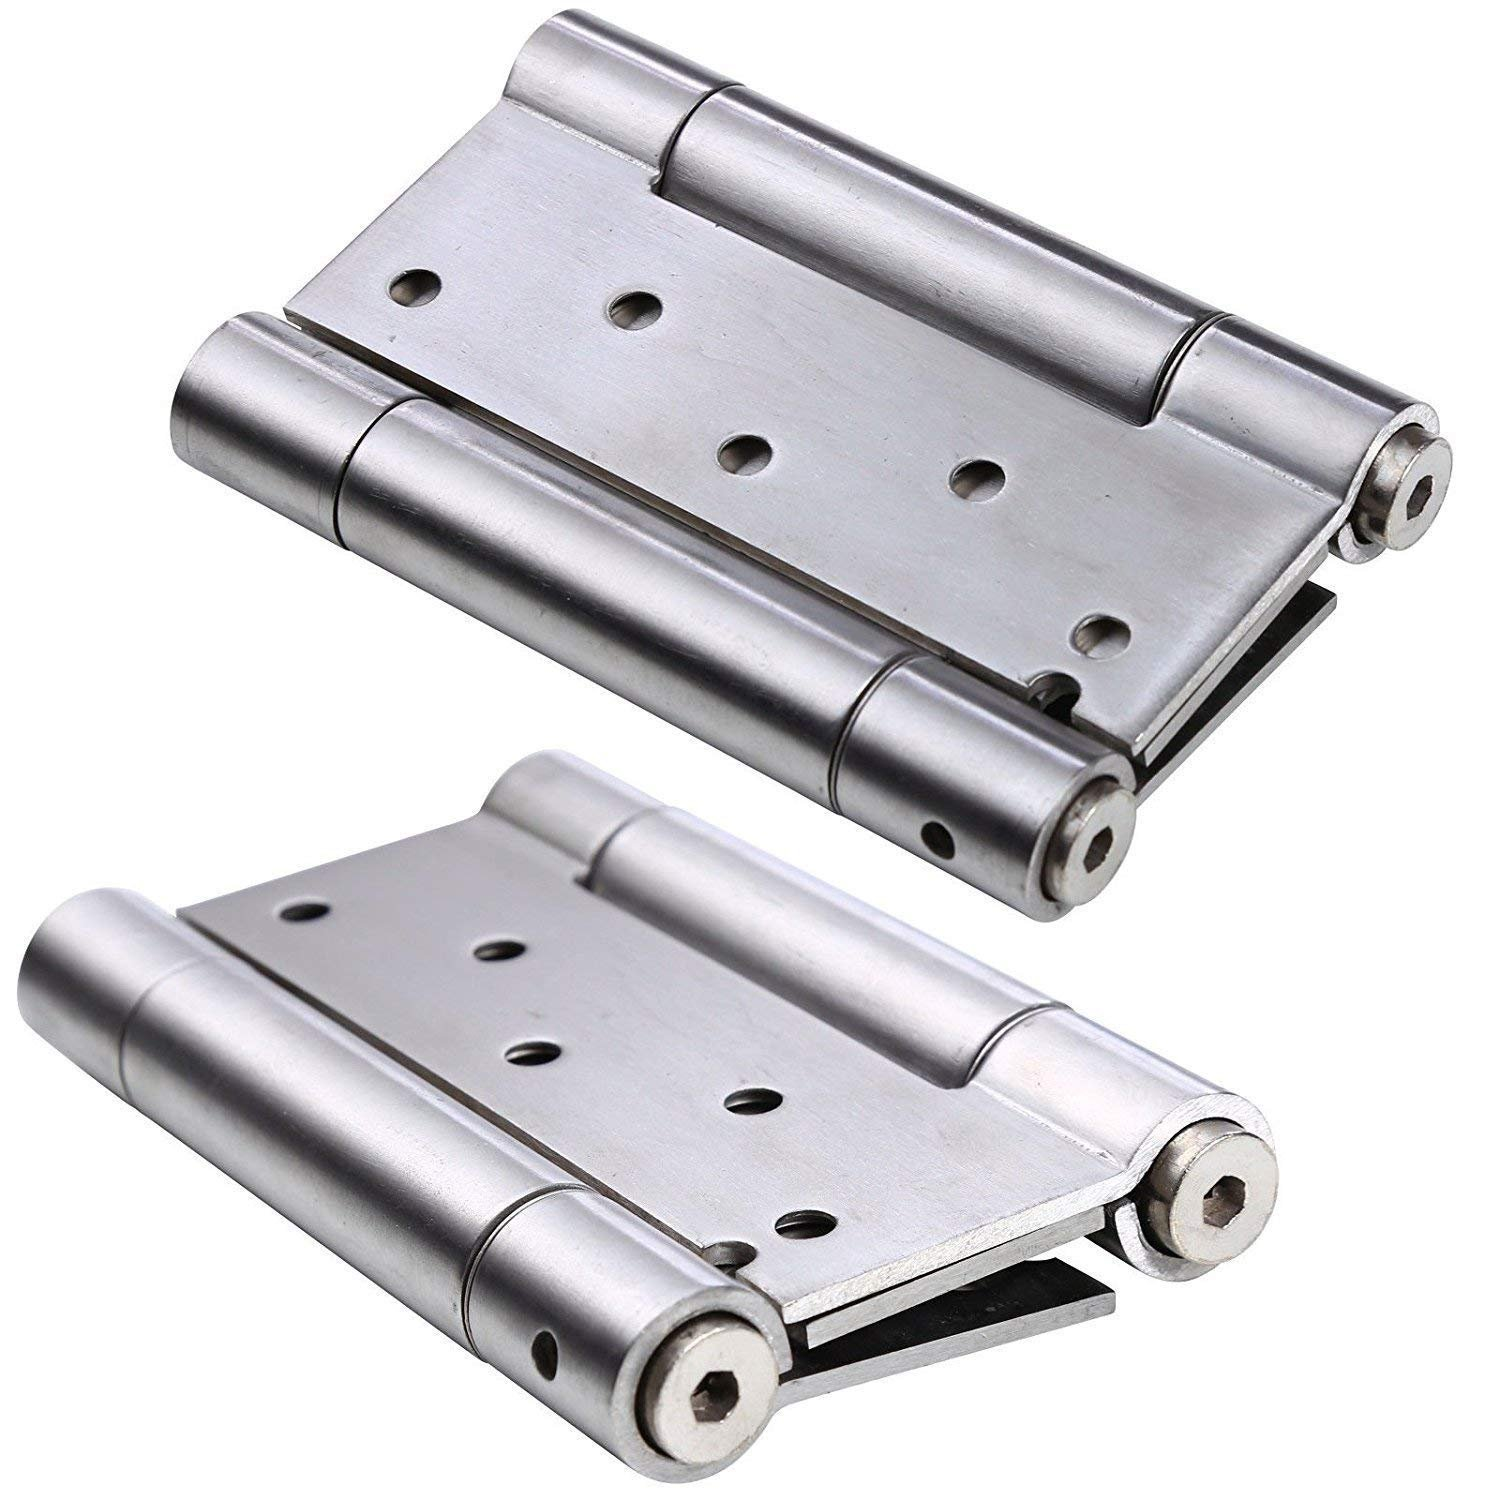 Ranbo 304 stainless steel ball bearing heavy duty Double Action spring loaded door swing gate hinge for saloon Western Bar Pub swinging Café Doors(Pack of 2) thickness:3 mm (3 inch)